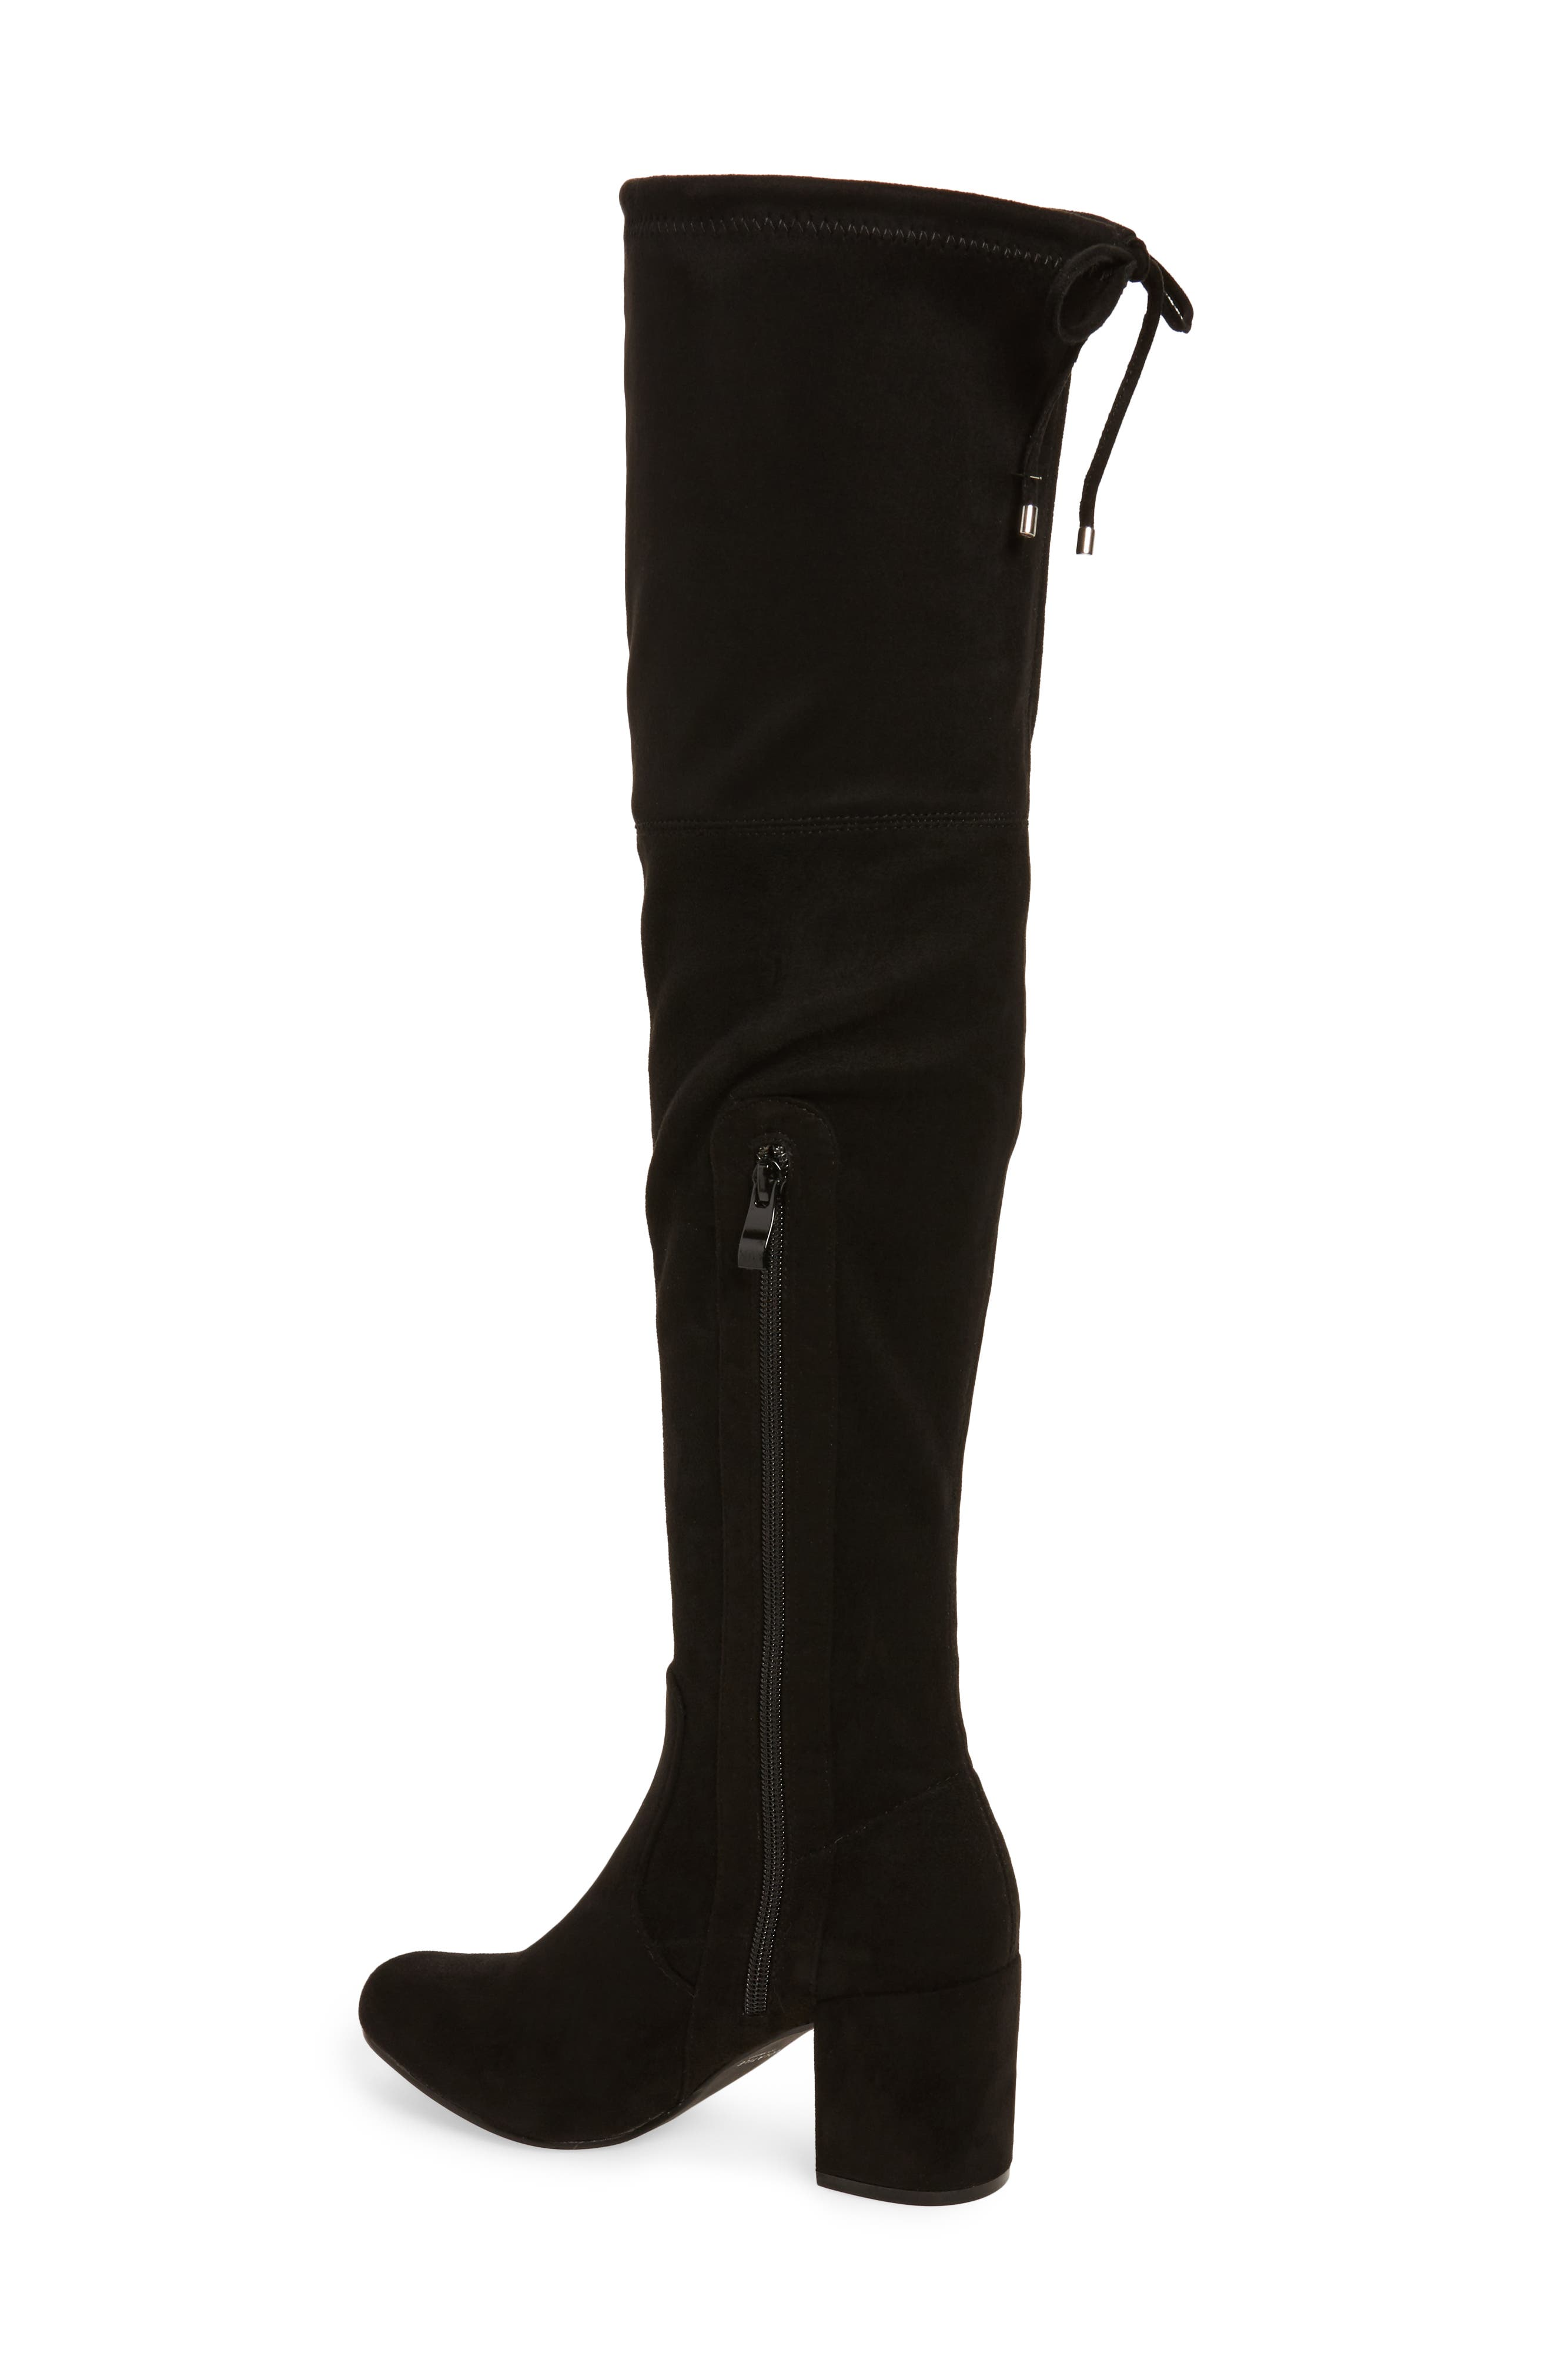 Heartbeat Over the Knee Boot,                             Alternate thumbnail 2, color,                             001